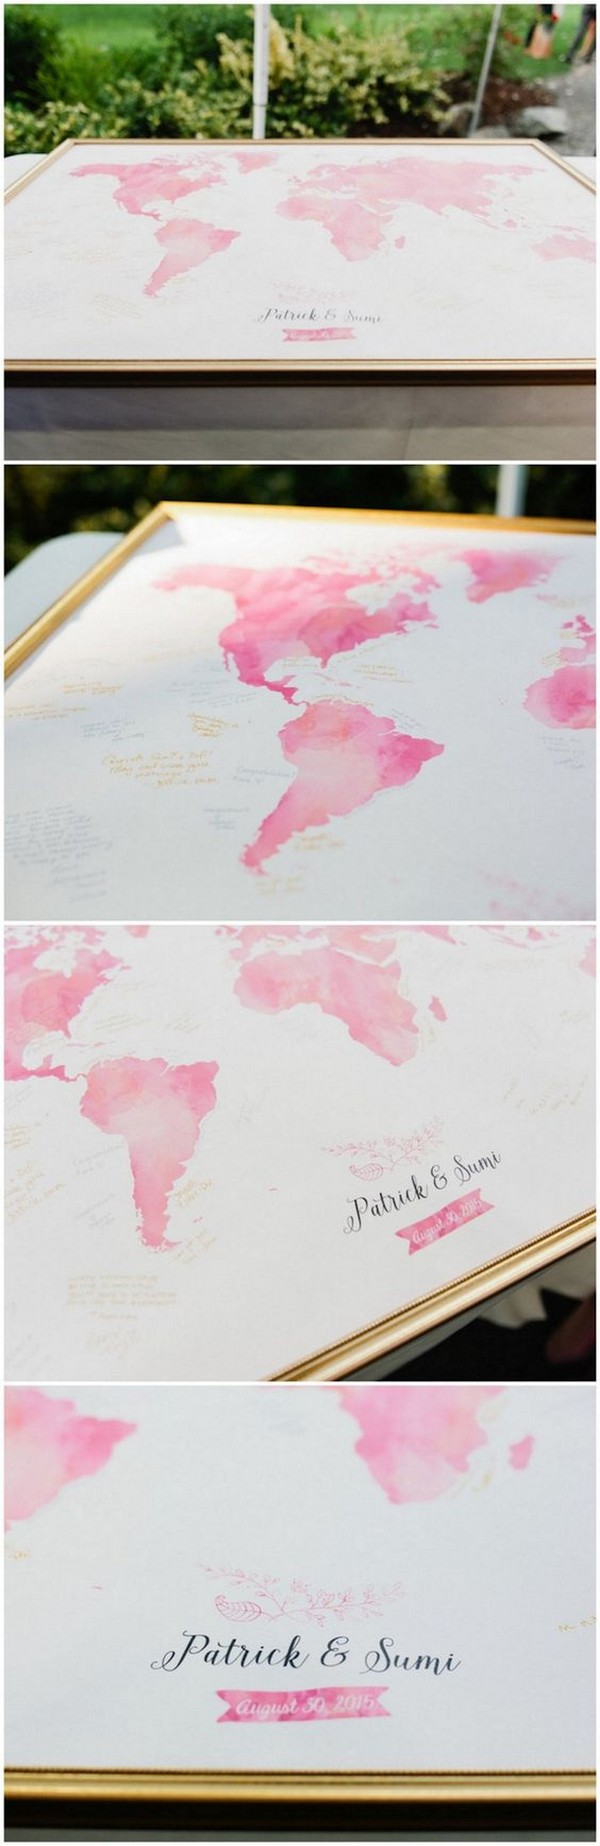 Pink Watercolor Wedding Map Guest Book